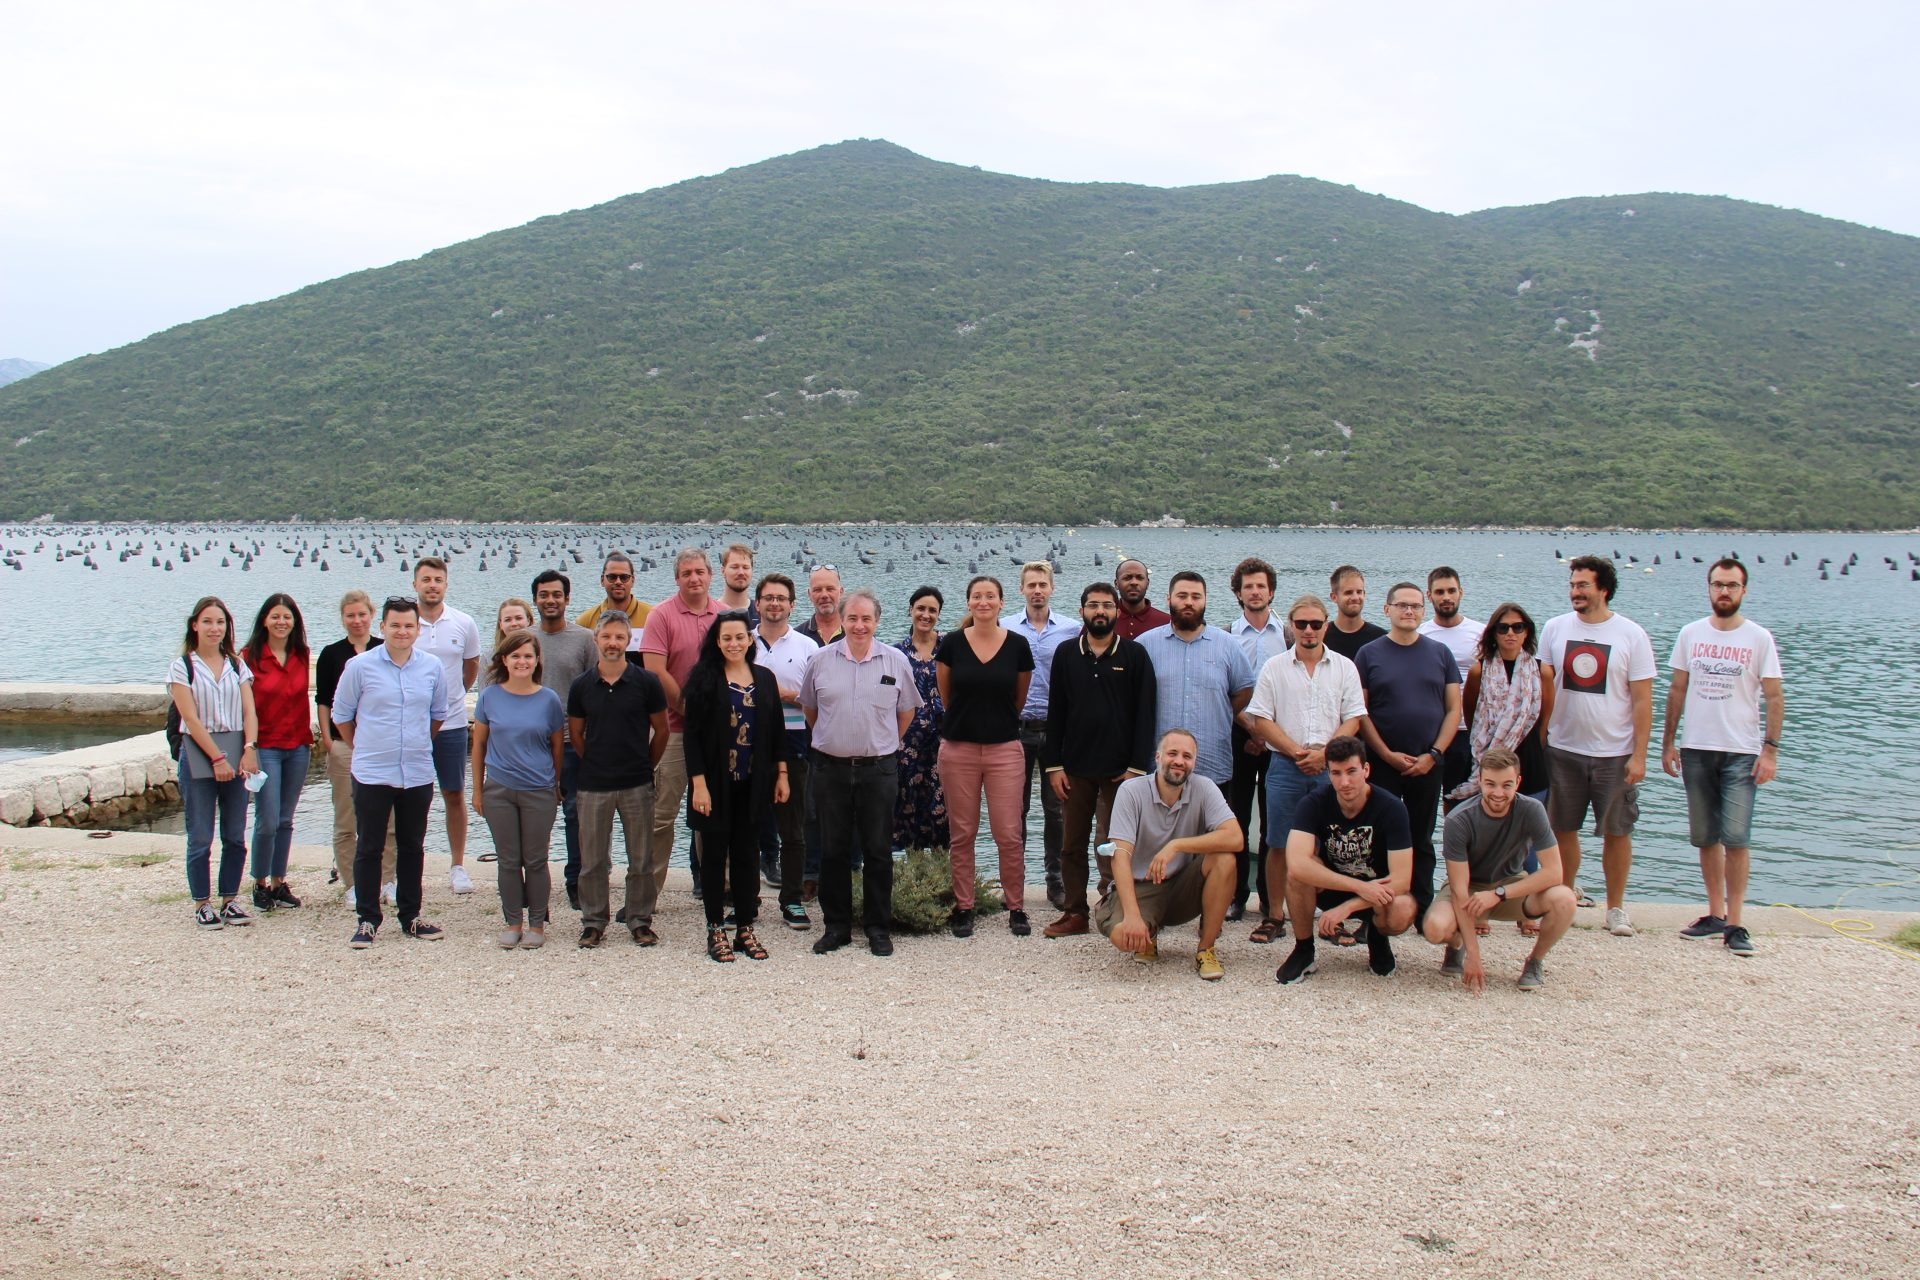 The H2020-SeaClear meeting and testing in Dubrovnik